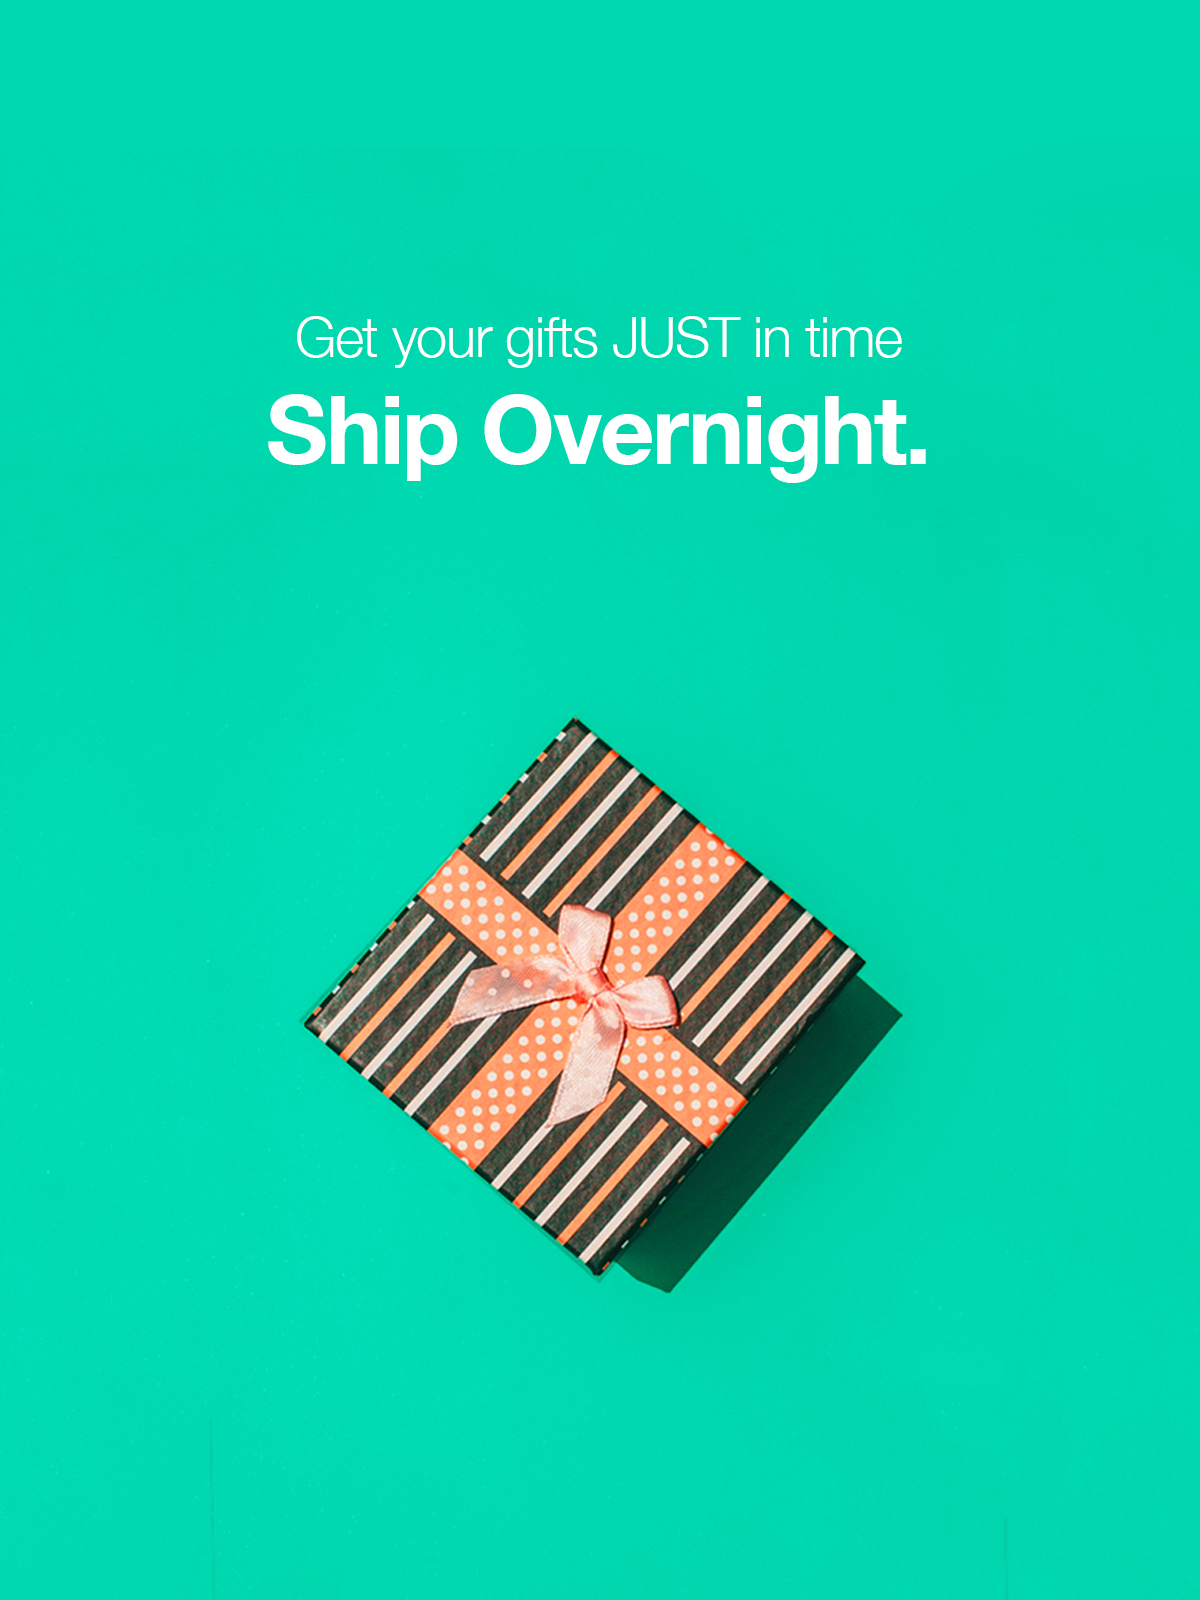 Overnight Shipping Cutoff - Snaps: A Blog from SnapBox